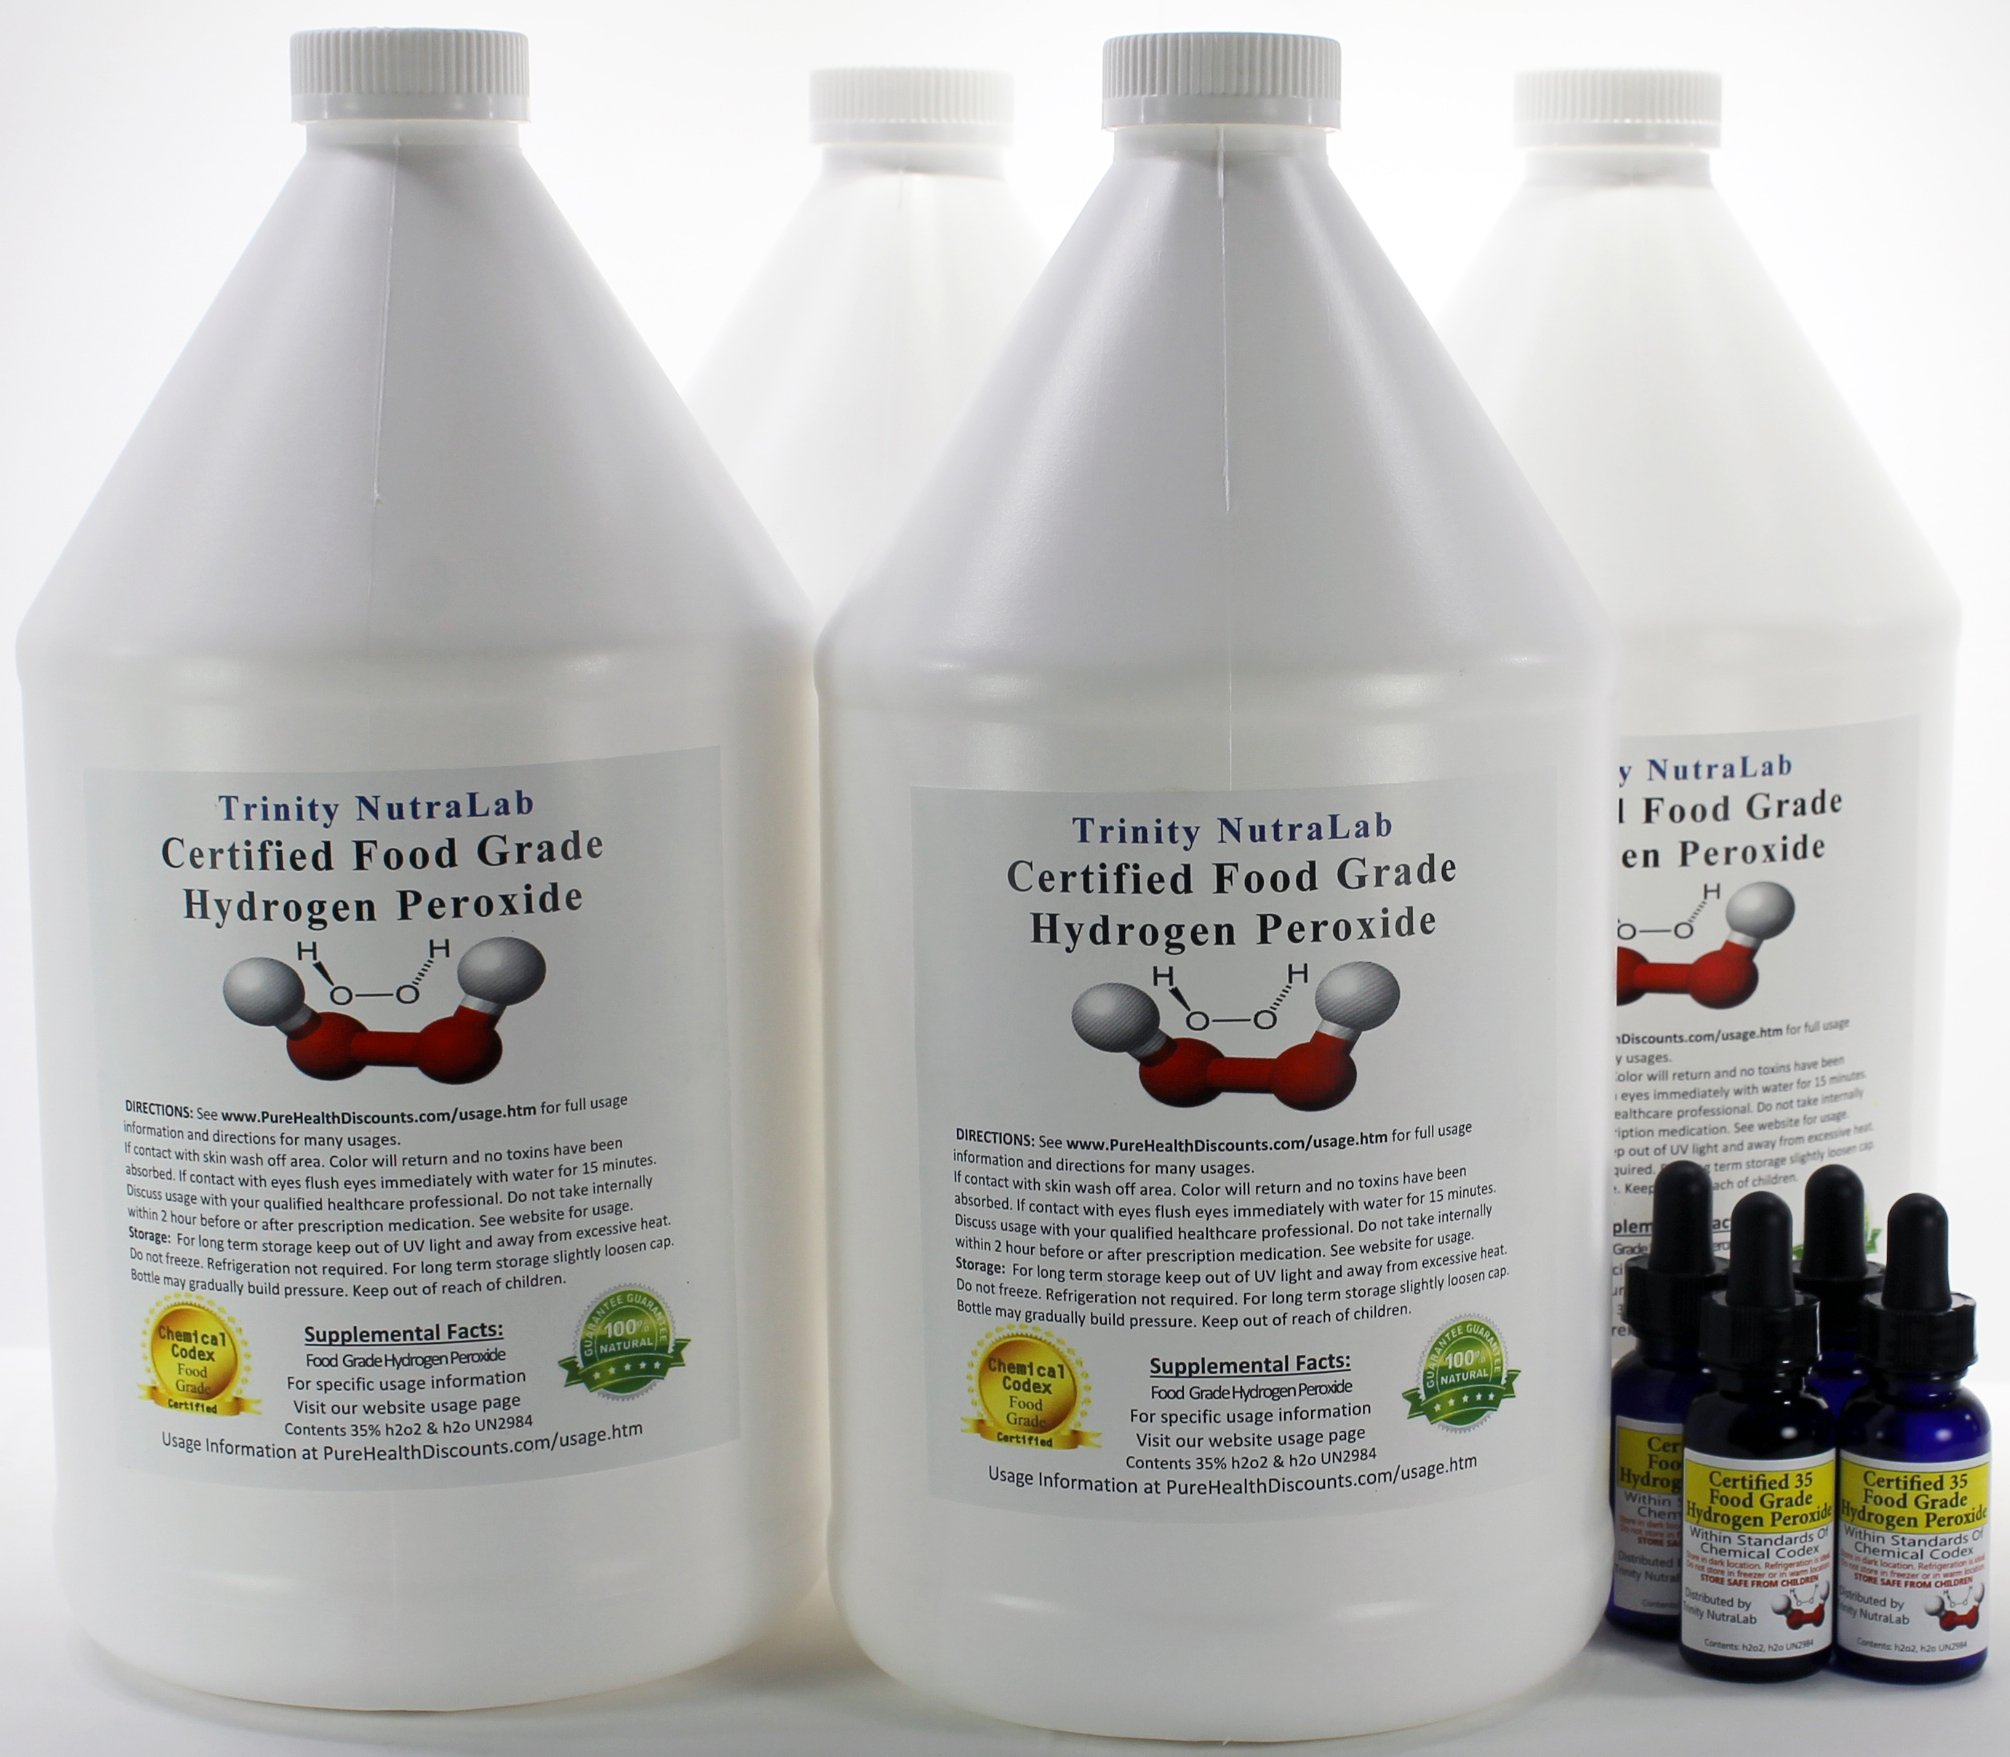 Trinity NutraLab 4 Gallons of 35% Food Grade Hydrogen Peroxide + 4 Filled Dropper Bottles by Trinity NutraLab